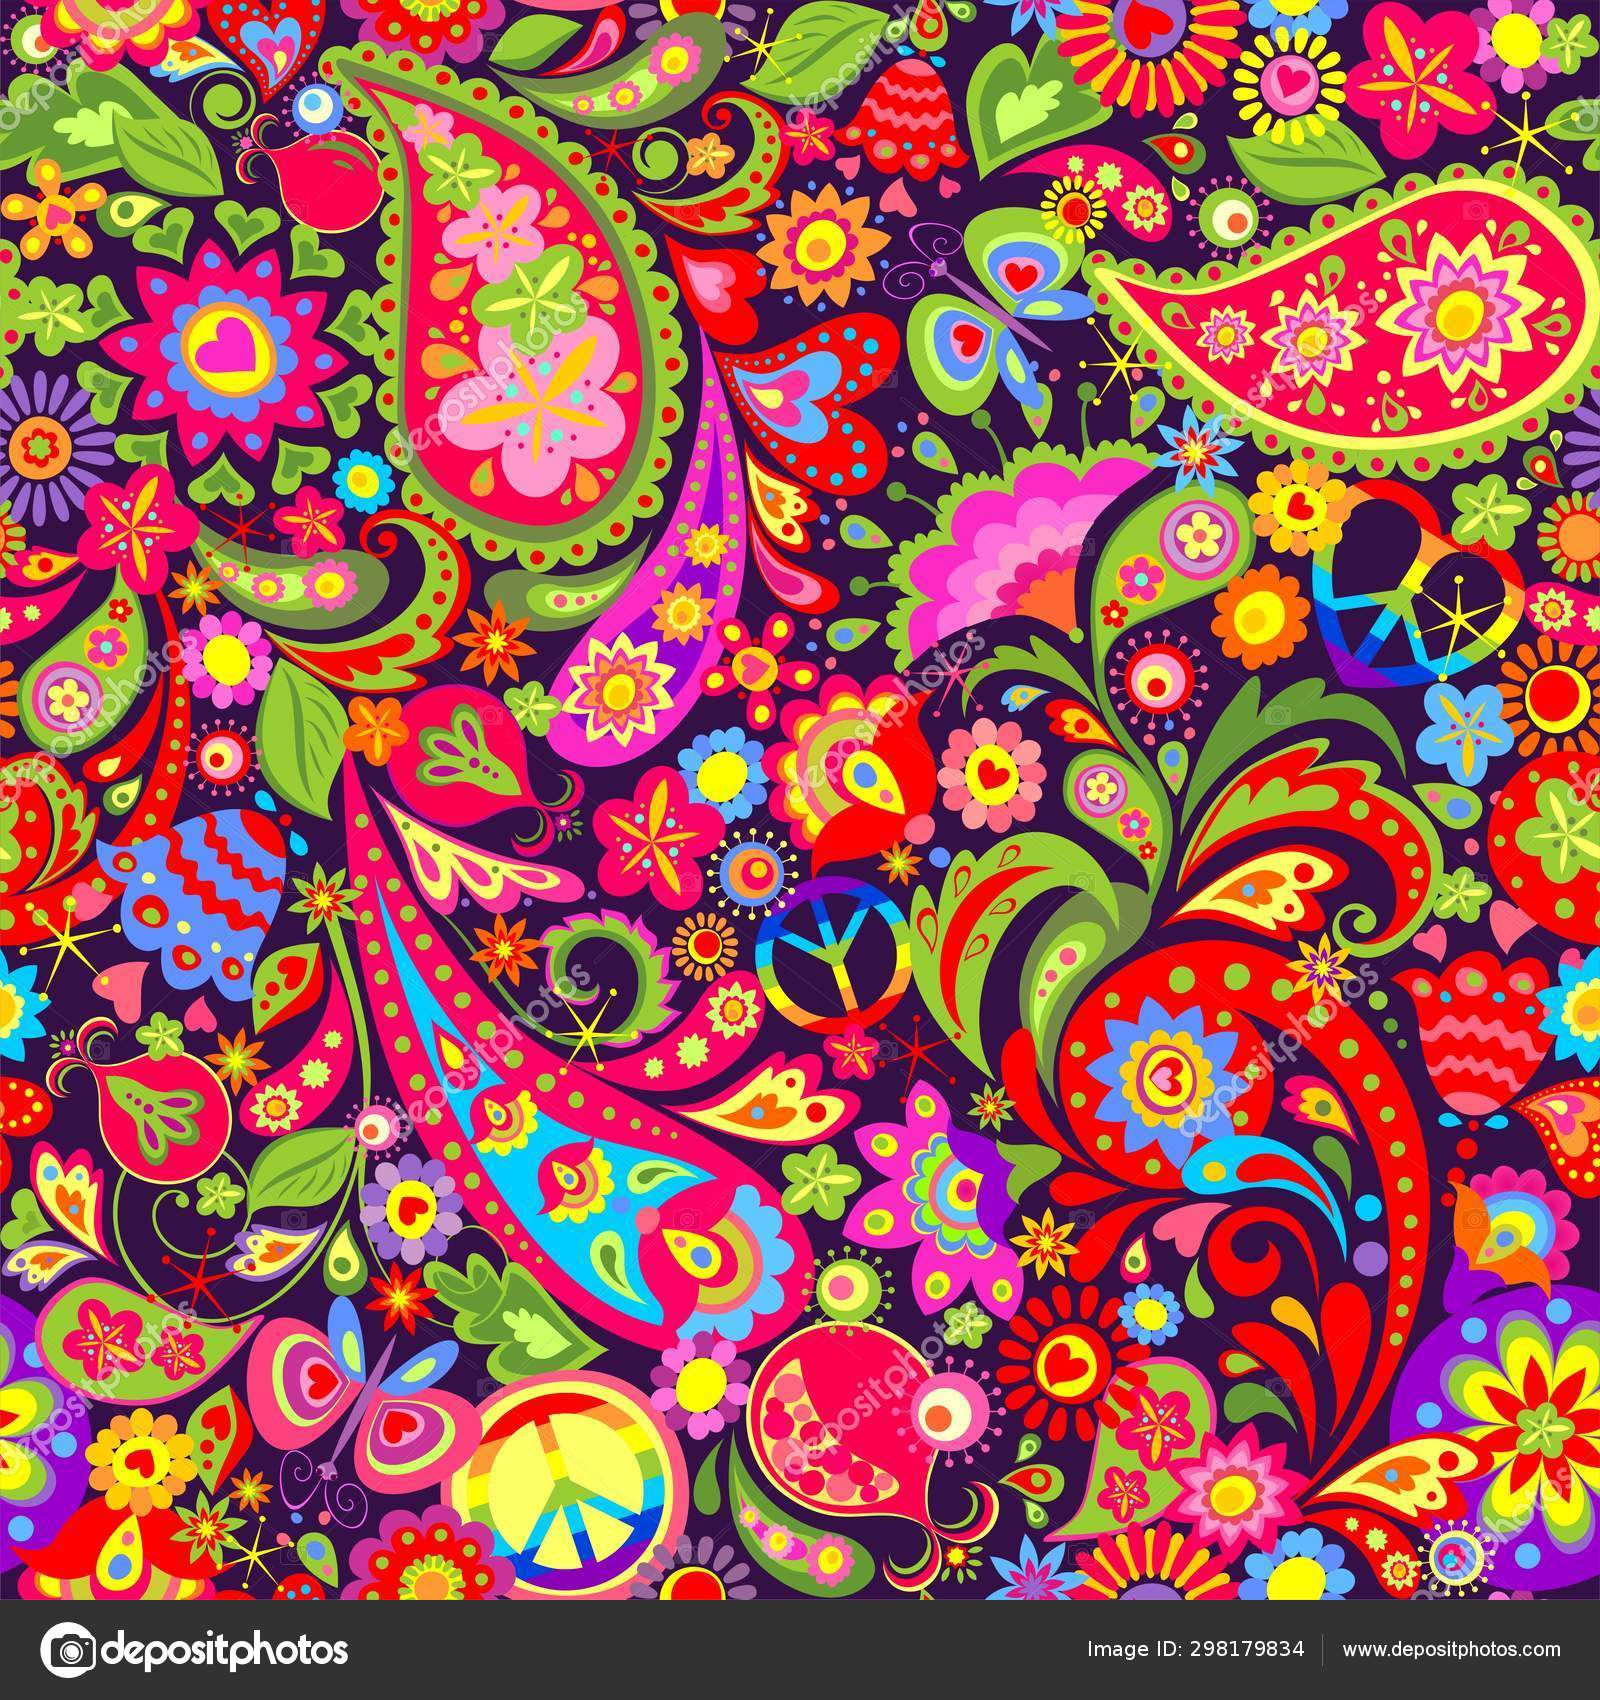 Hippie Vivid Colorful Wallpaper Abstract Flowers Hippie